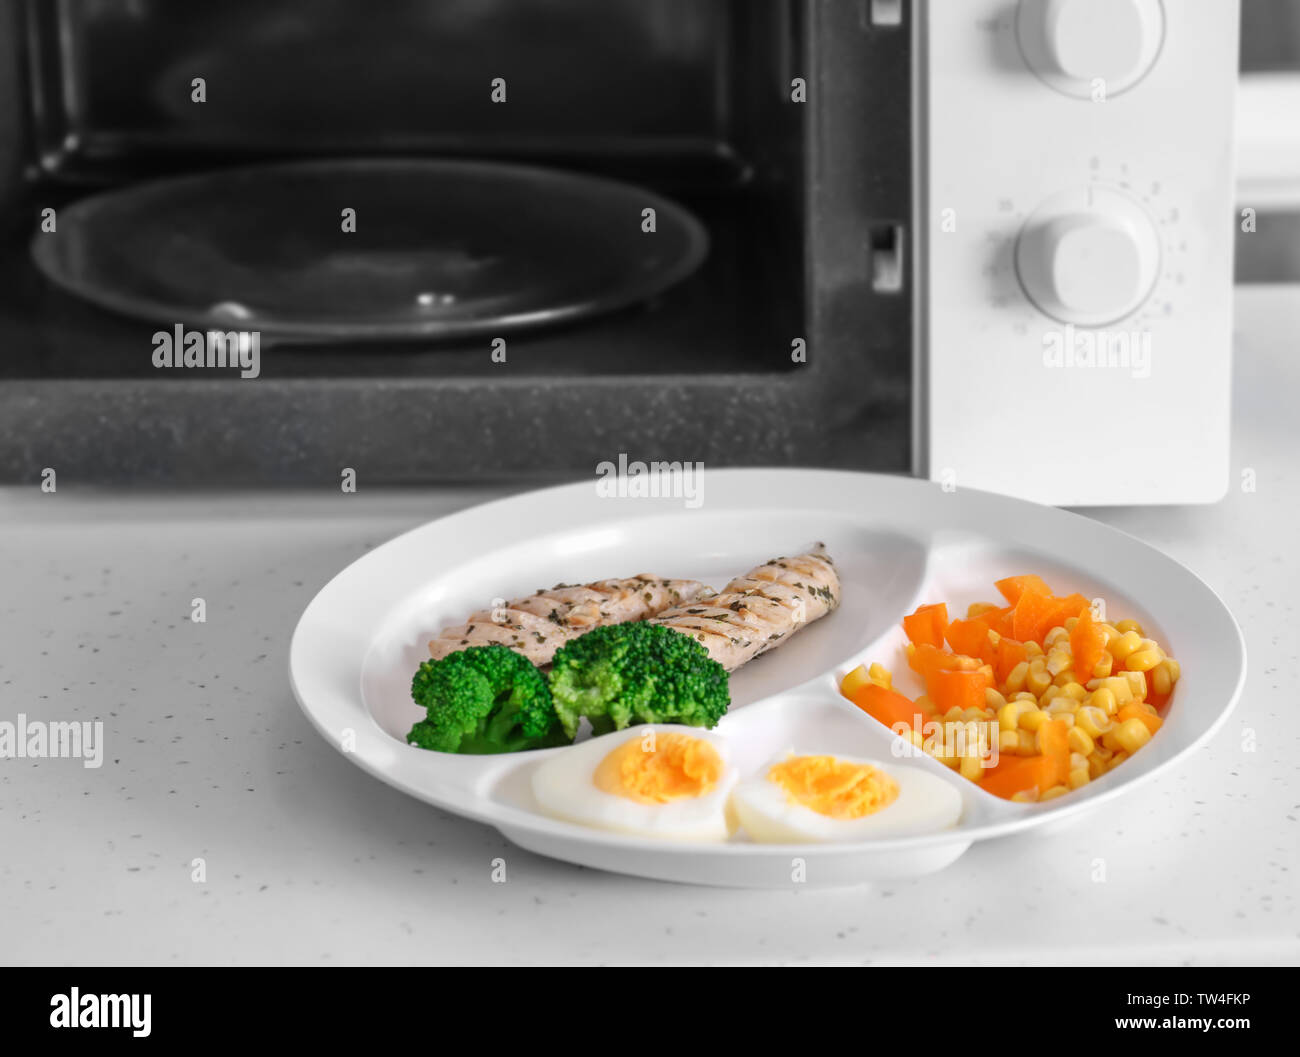 Plate with tasty organic food near microwave on table - Stock Image